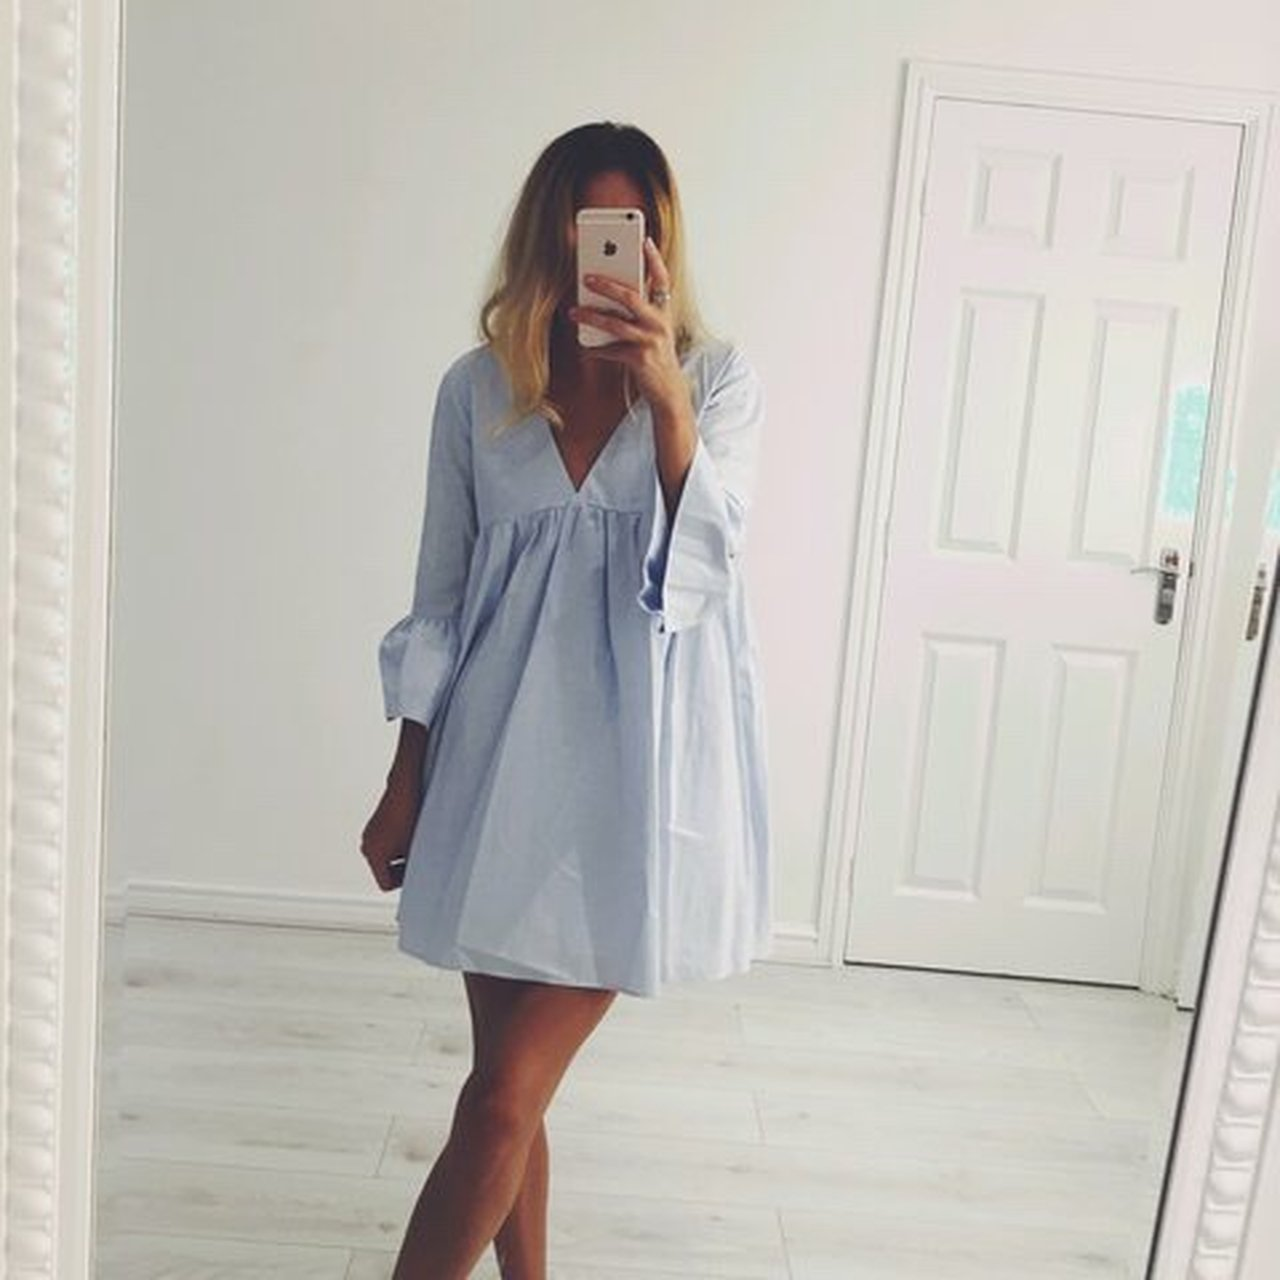 d6167b4c2ae Zara blue playsuit dress - sold out not available online and - Depop